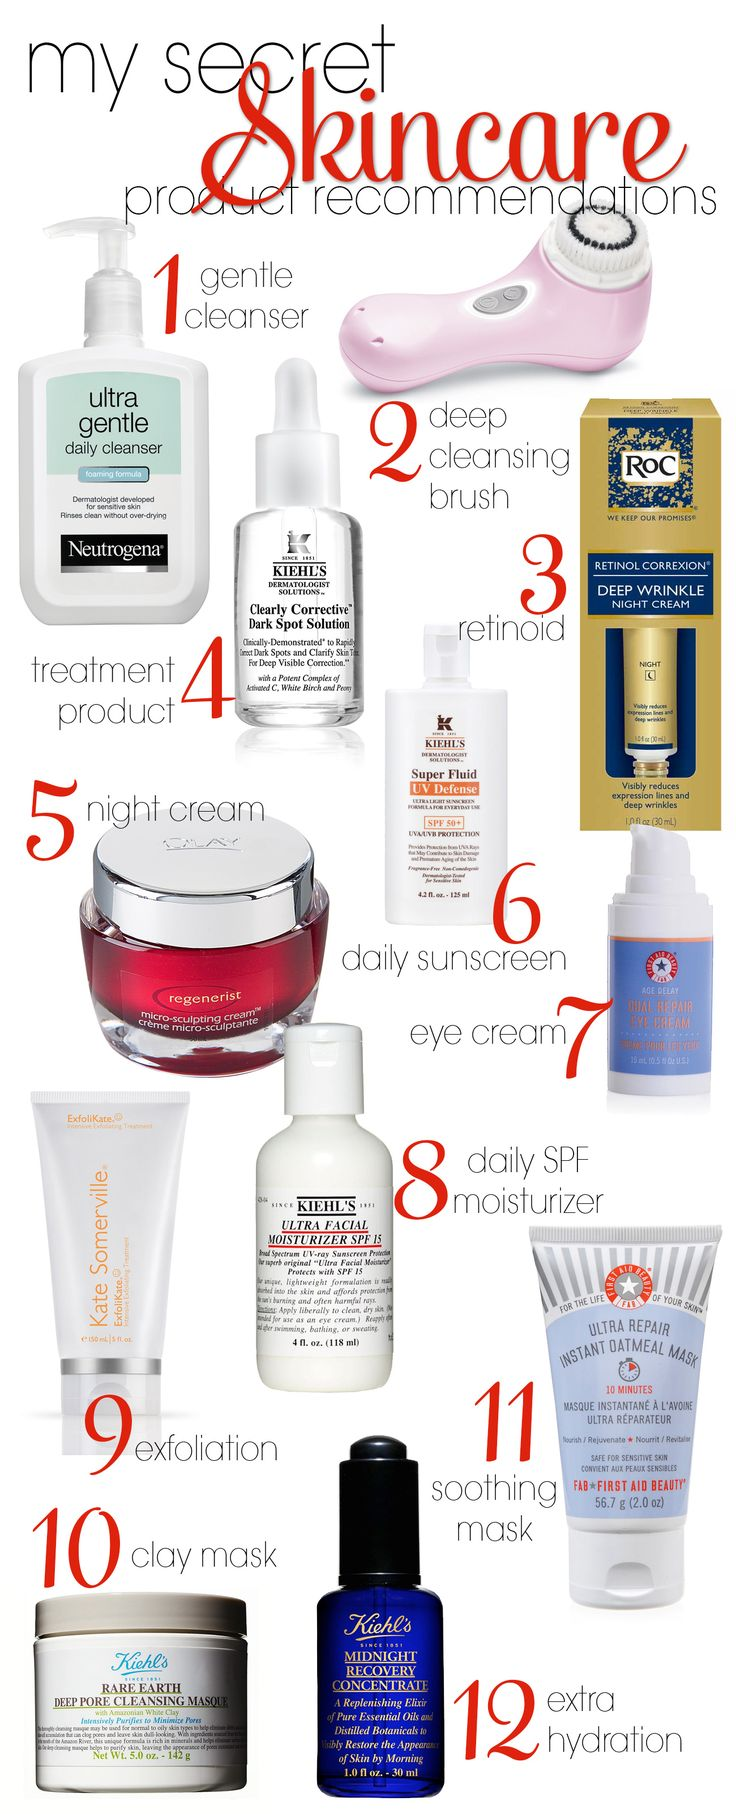 My Skincare Product Recommendations Readers Don't See